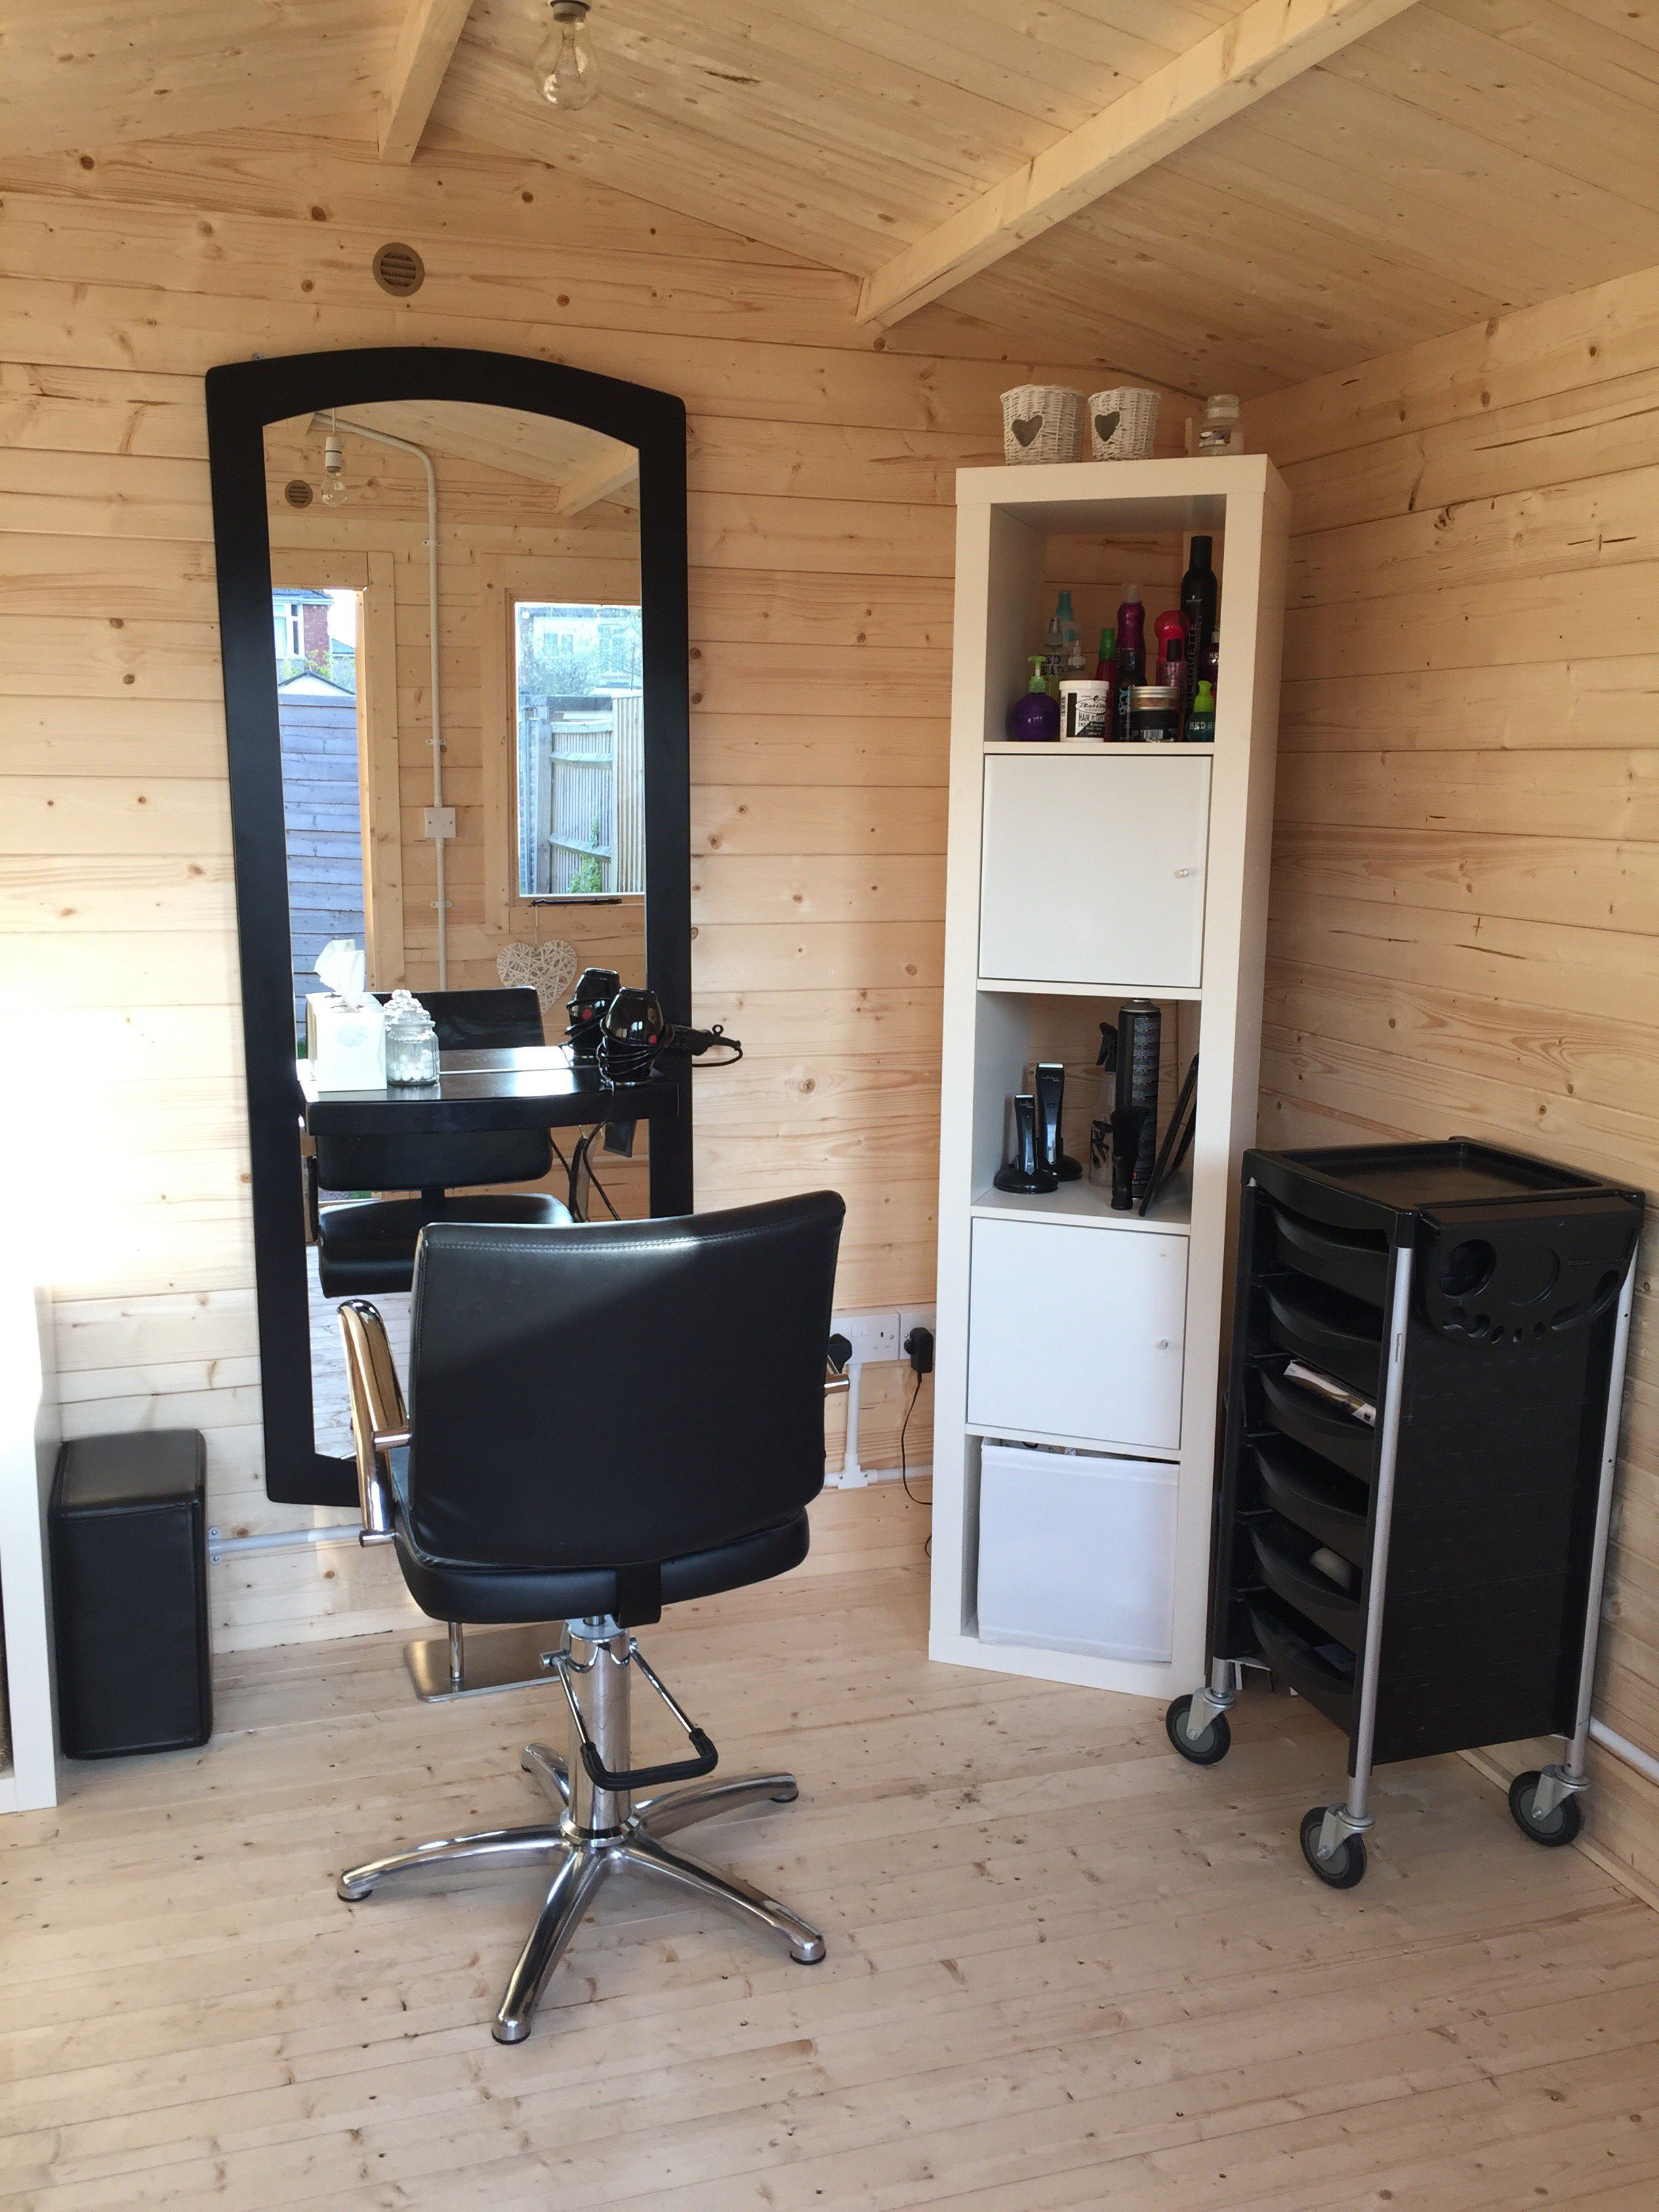 Emma Vietch turned her Log Cabin into a hair salon to free up some